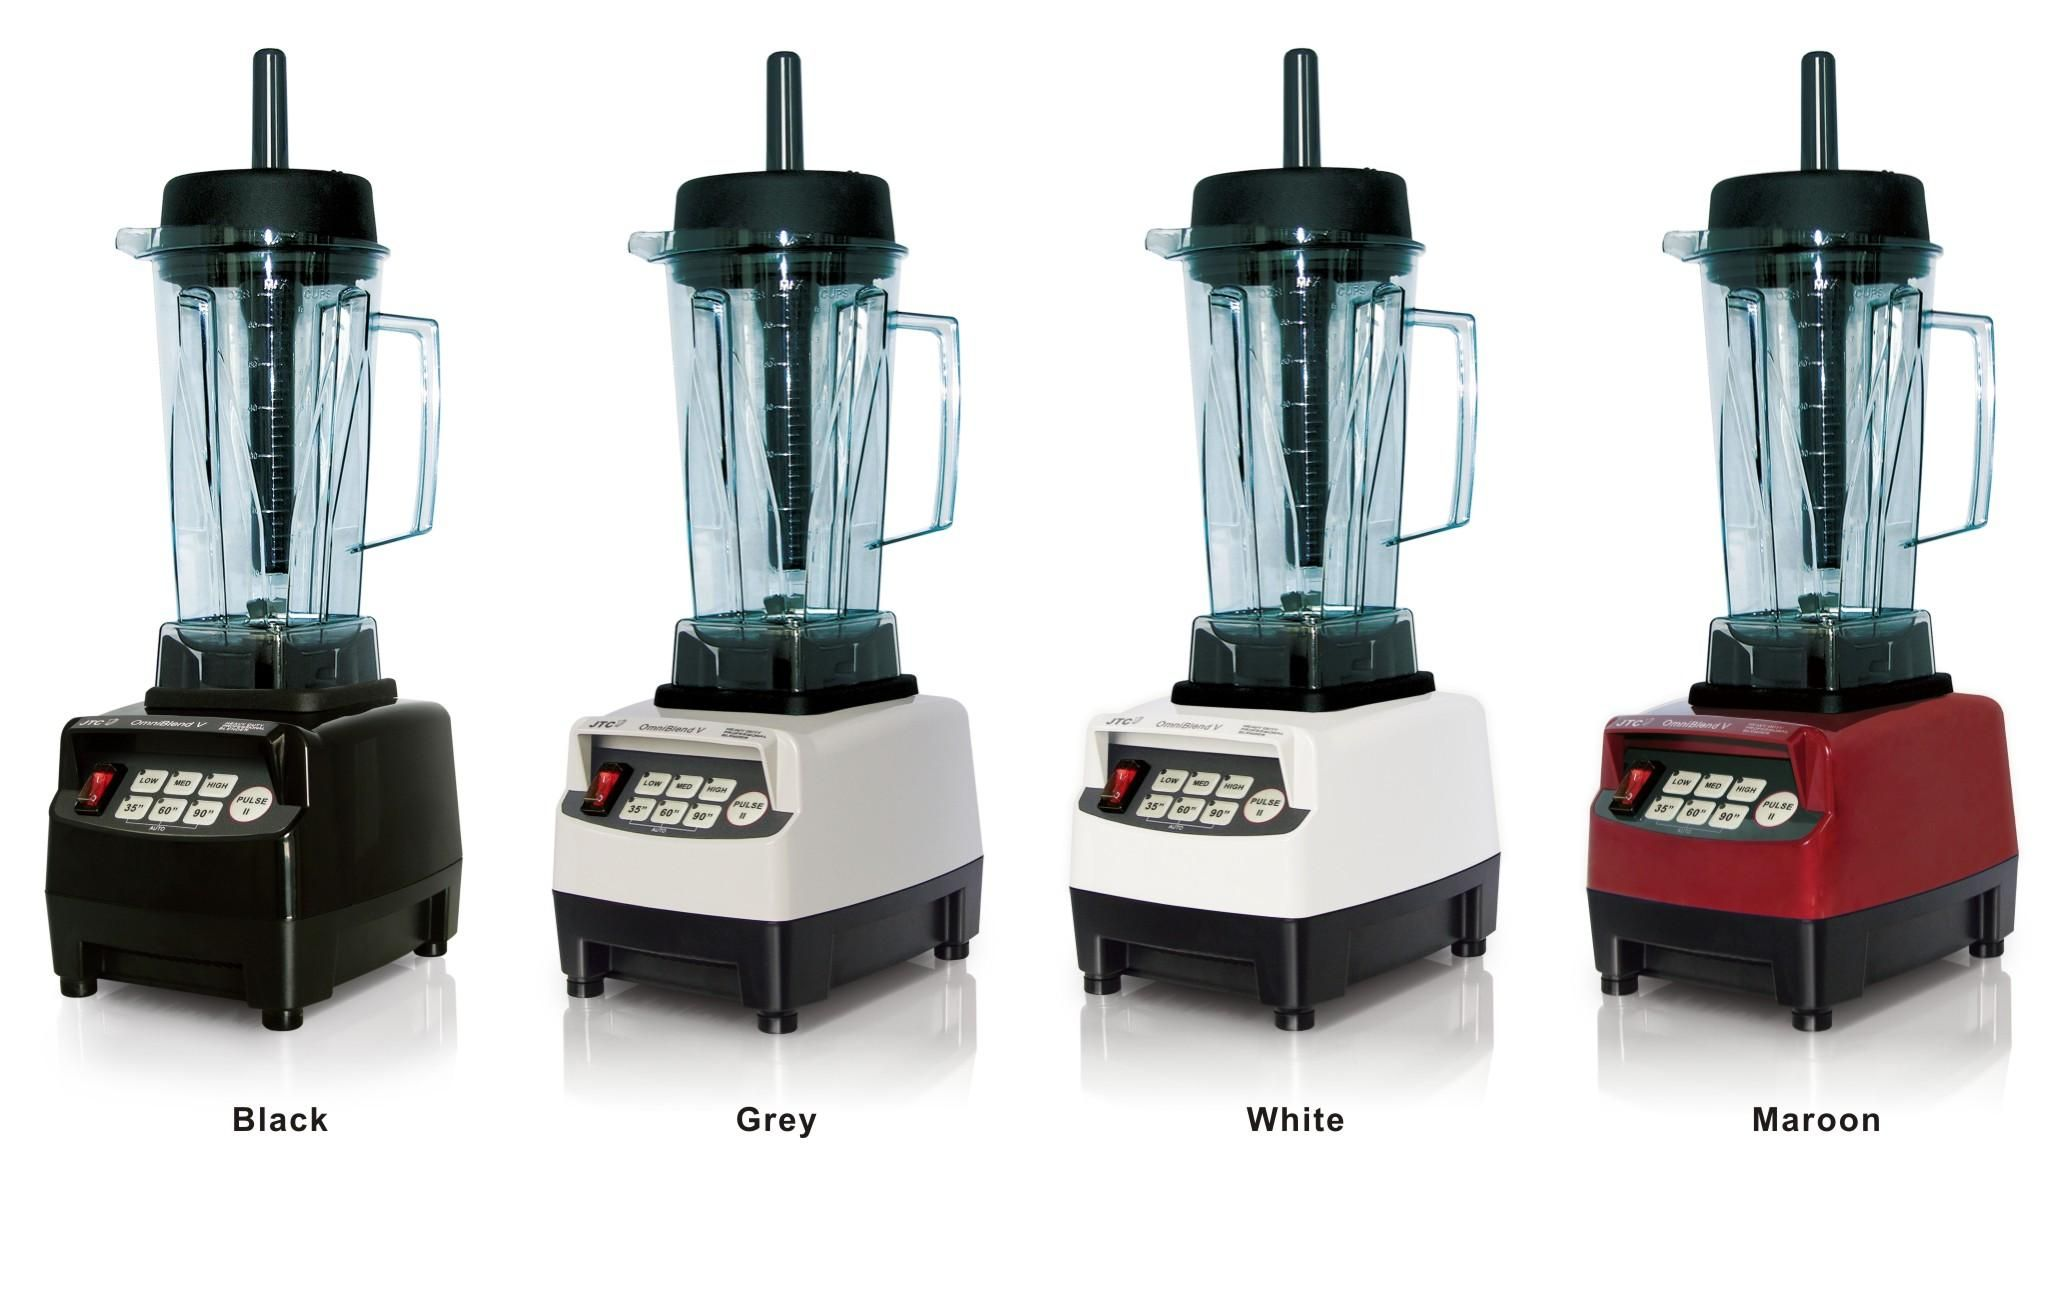 Multipurpose JTC commercial blender, Model:TM-800, Black, FREE SHIPPING, 100% GUARANTEED NO. 1 QUALITY IN THE WORLD.